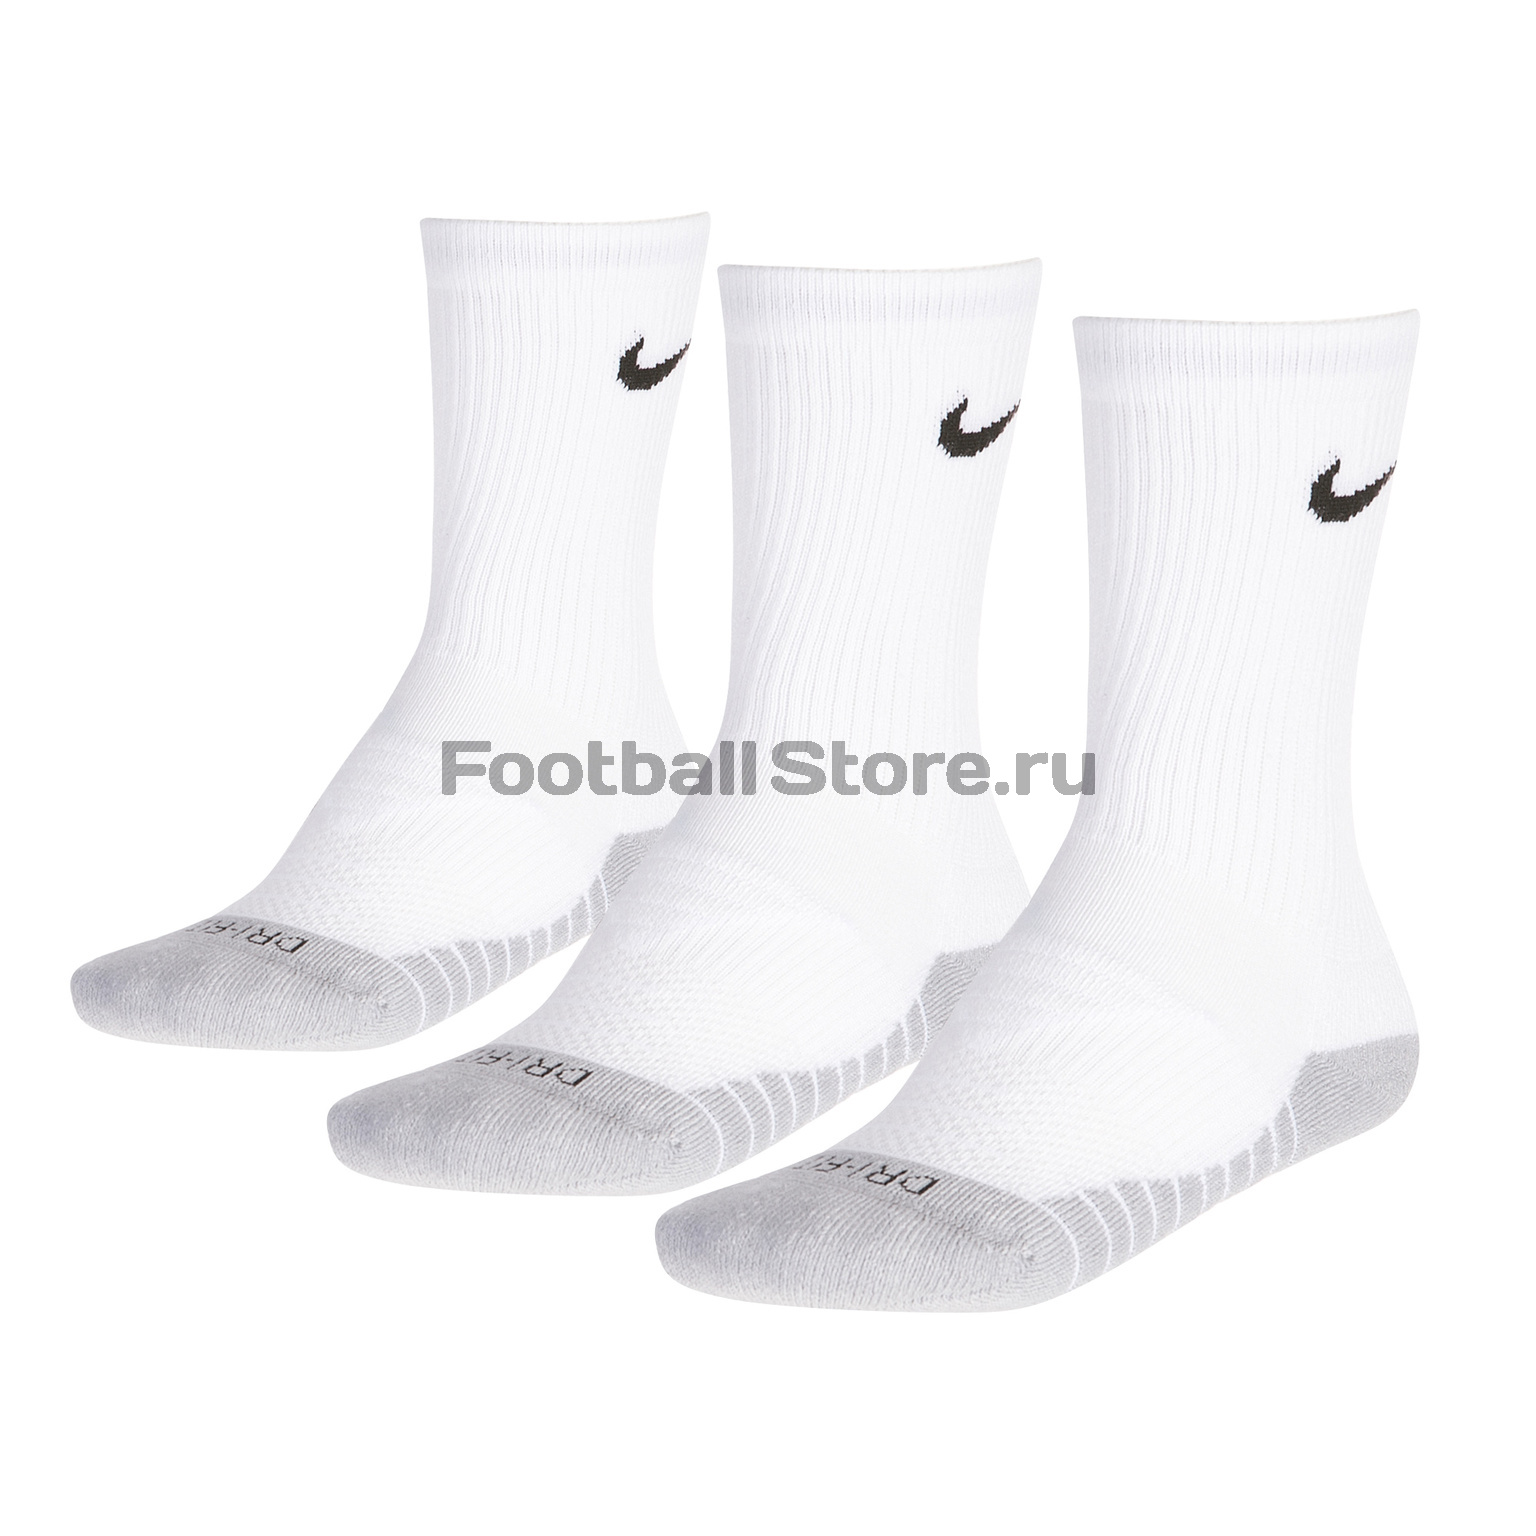 Комплект носков Nike 3PPK Dri-Fit Cushion Crew SX5547-100